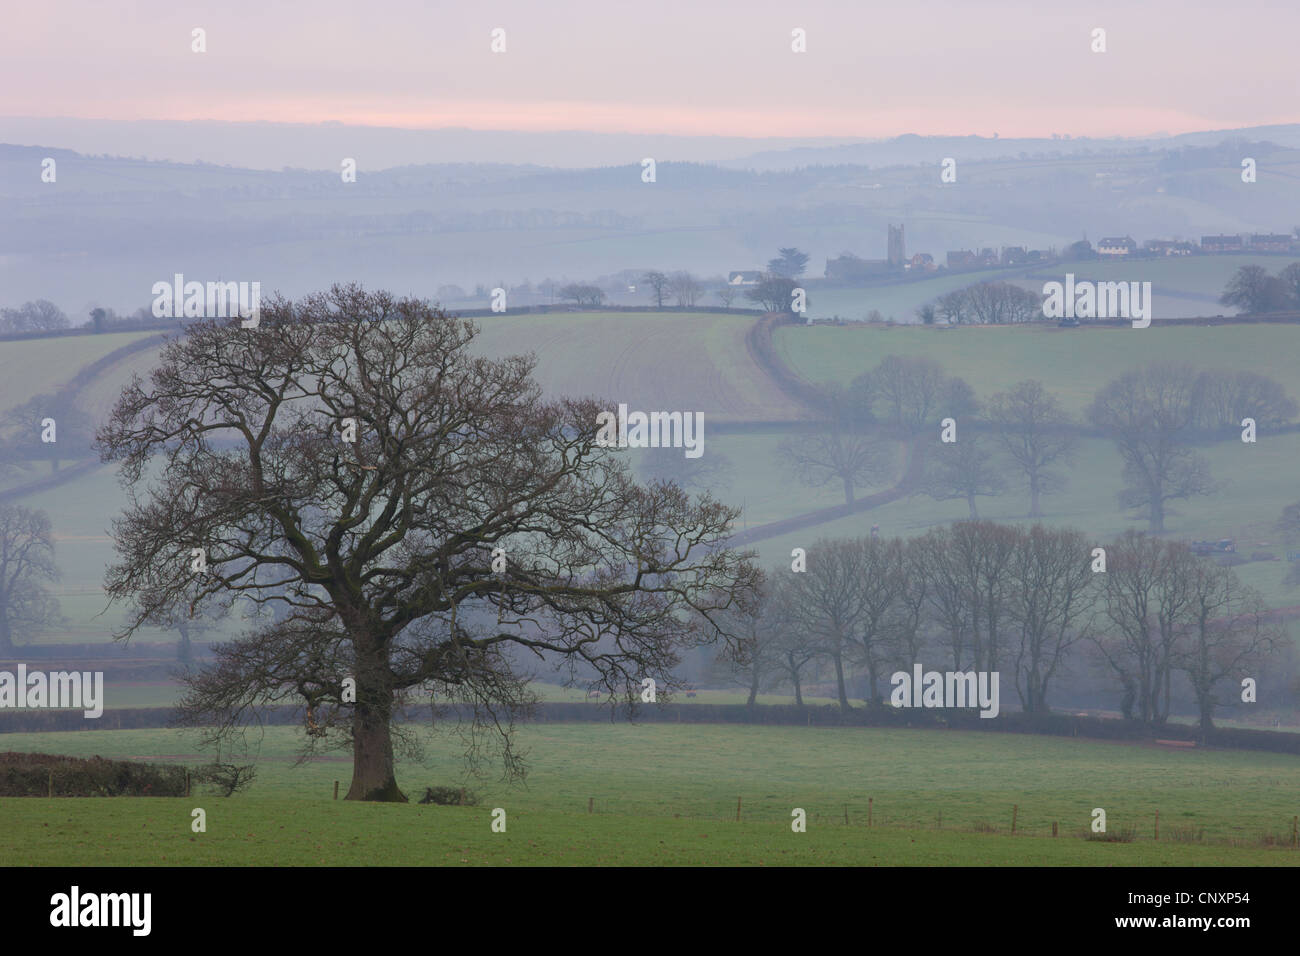 Mist covered rolling countryside near Coleford, Devon, England. Winter (January) 2012. - Stock Image